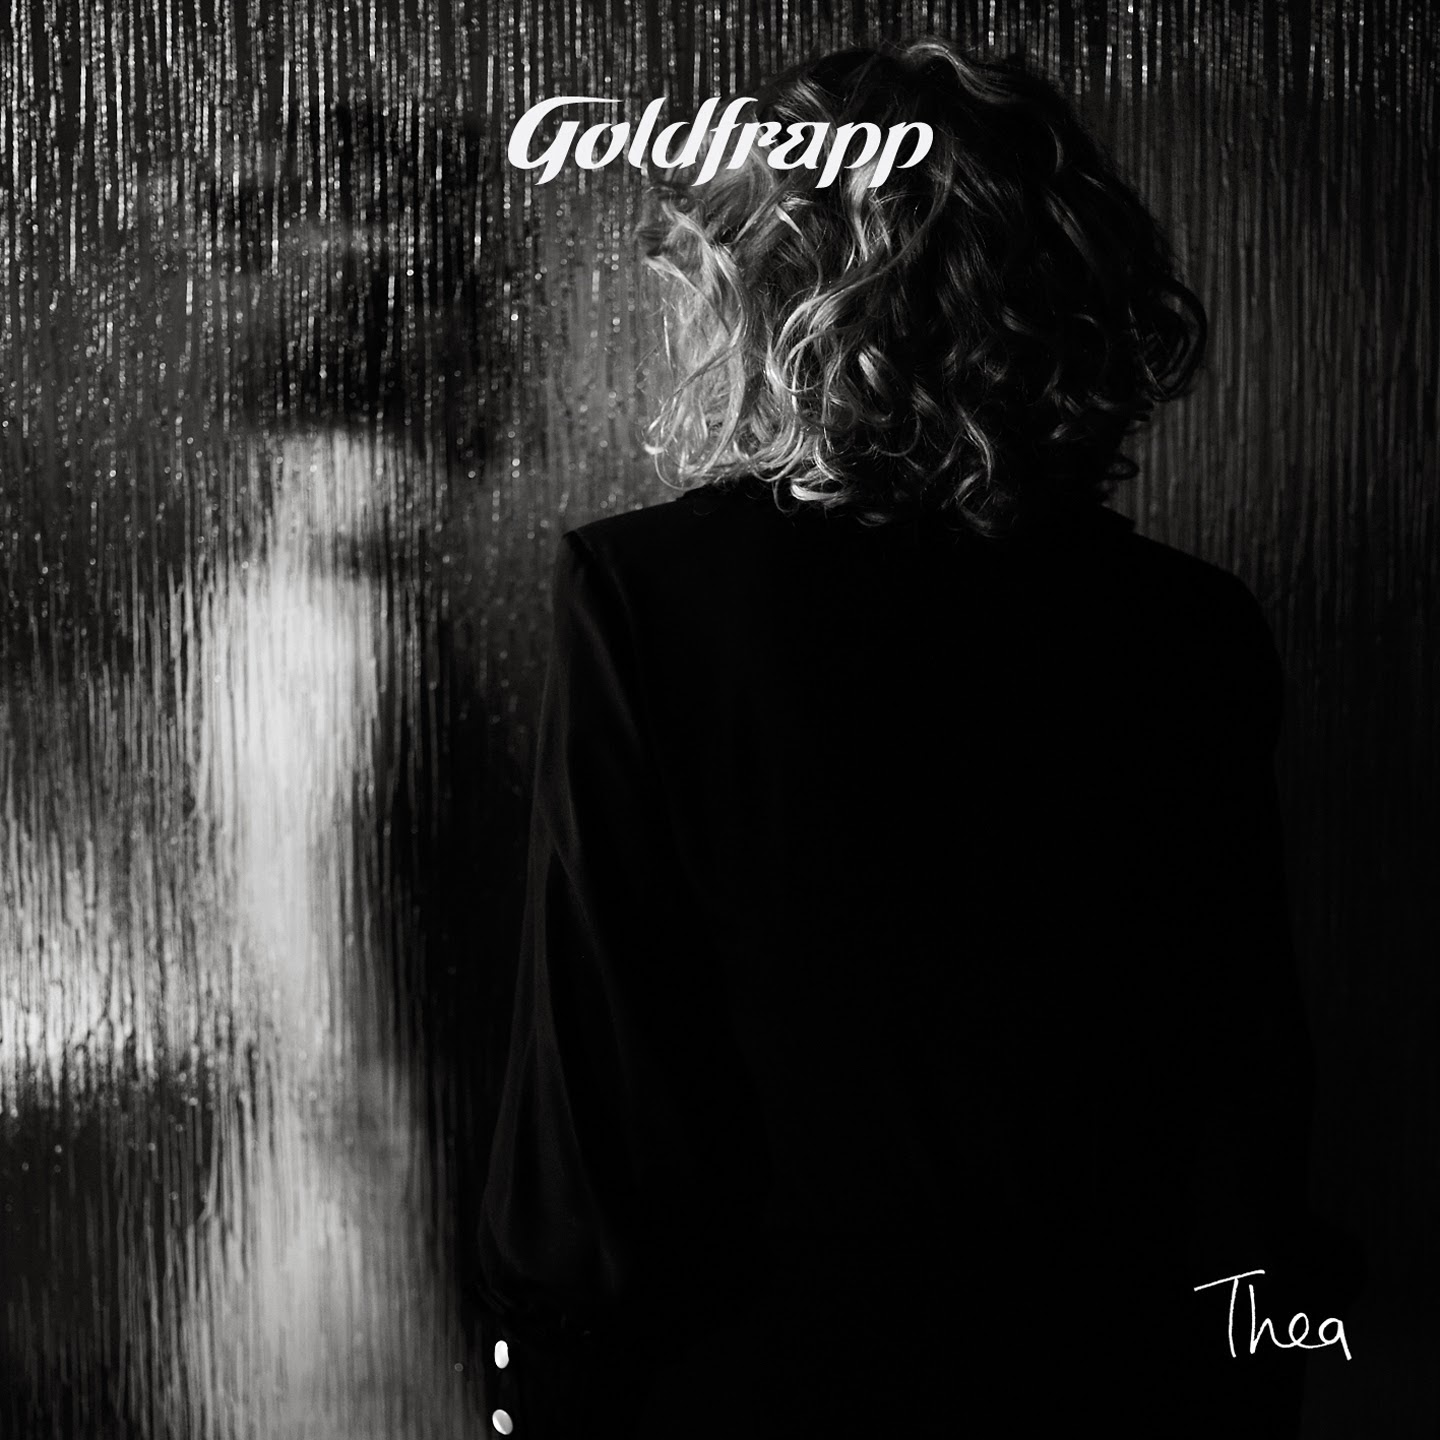 Goldfrapp Tales of Us cinema event and new single Thea